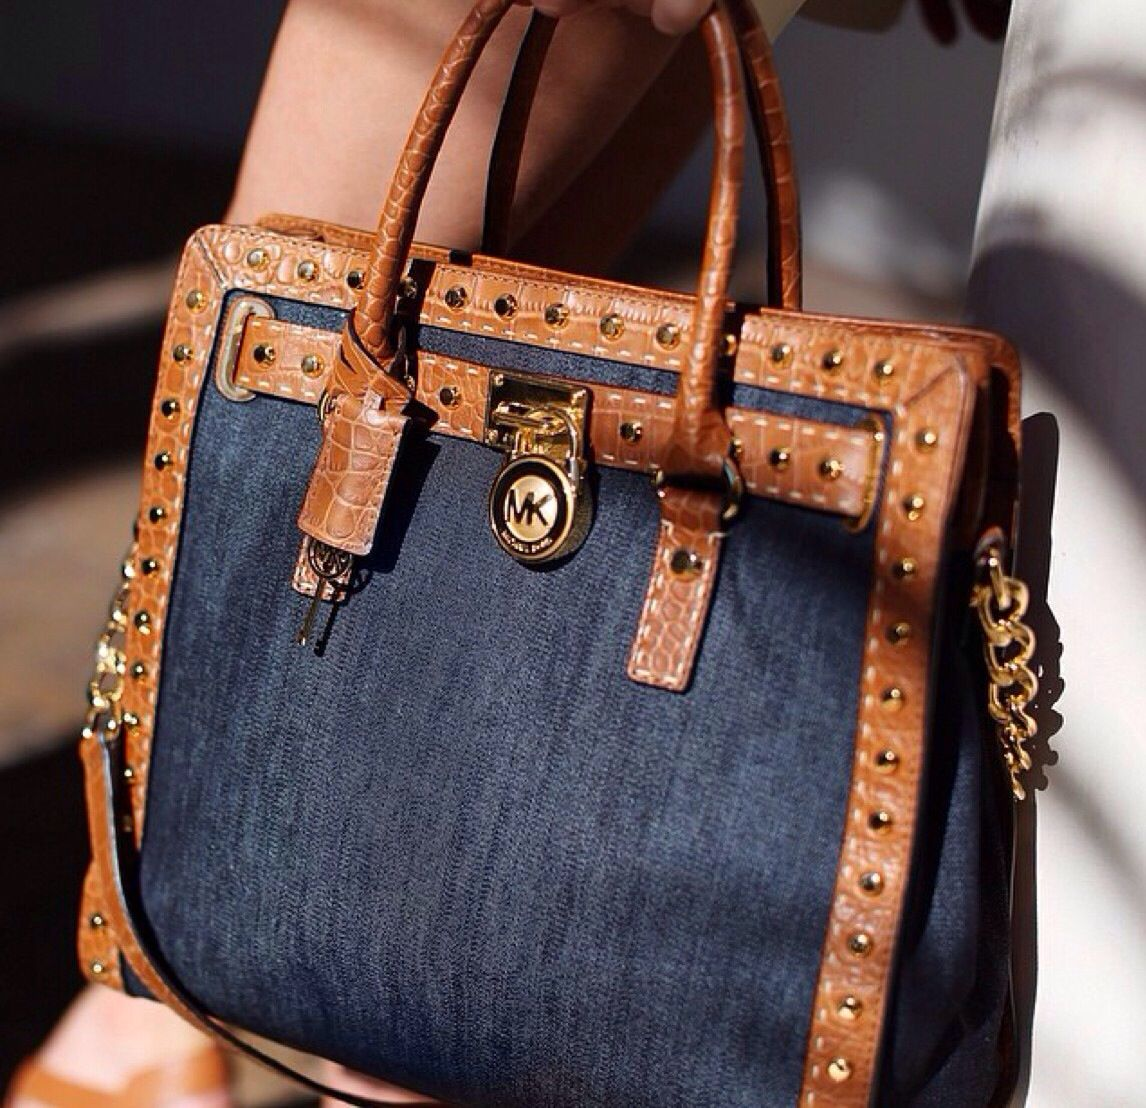 1a7e61d39f4d New! Michael Kors Denim bag ! | My Style in 2019 | Michael kors bag ...